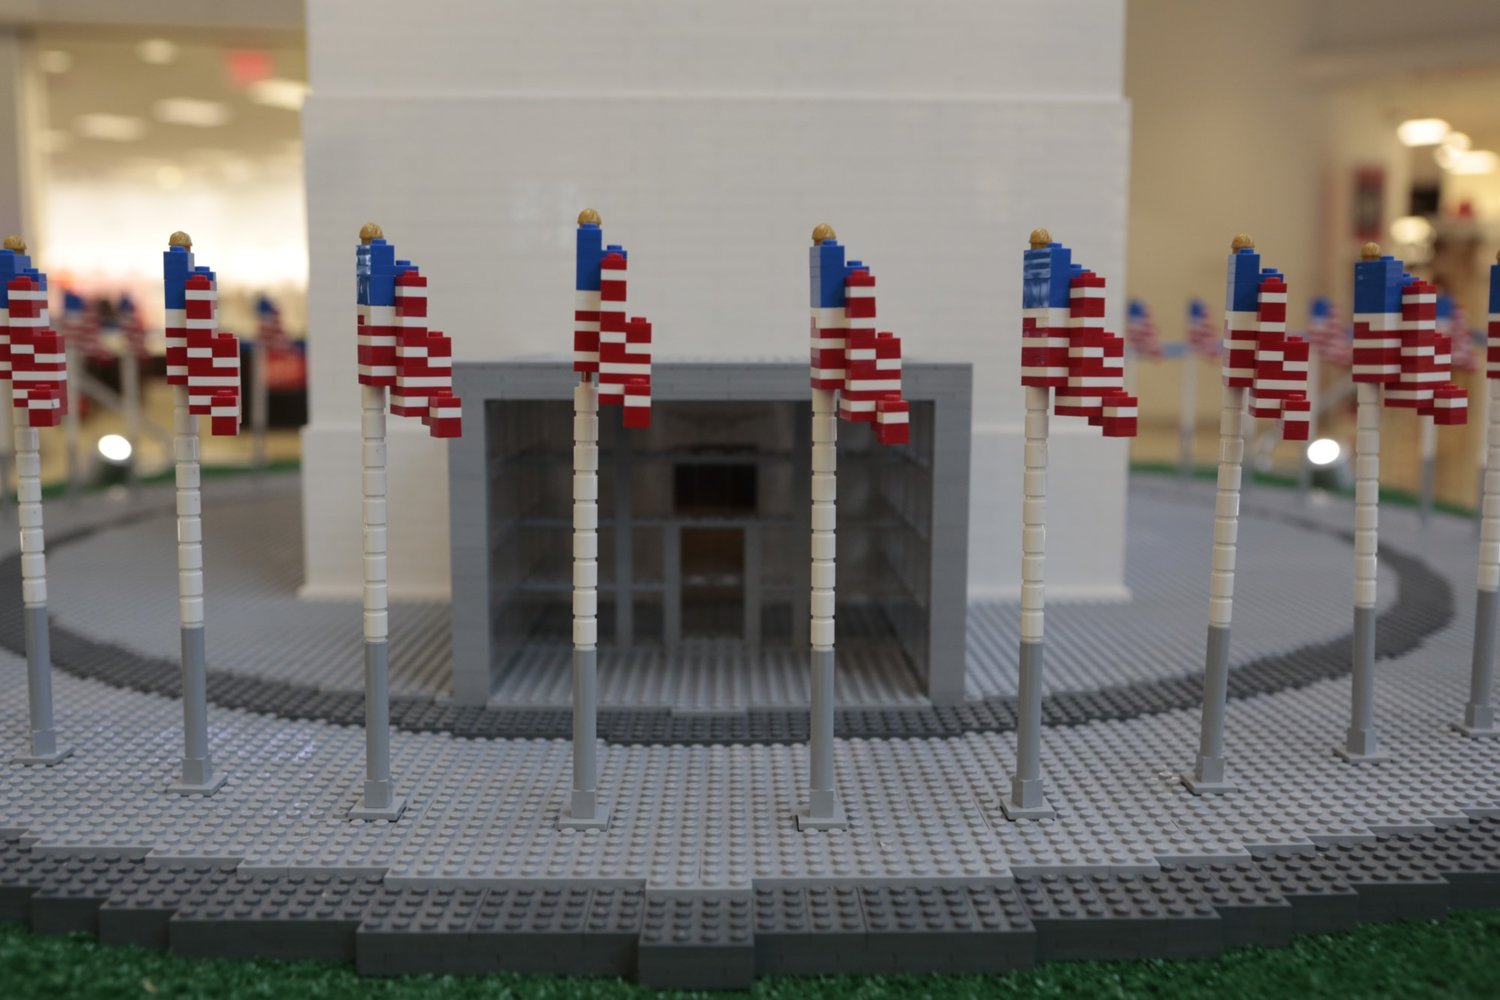 Lego Brand Celebrates American Icons On The National Mall Trust